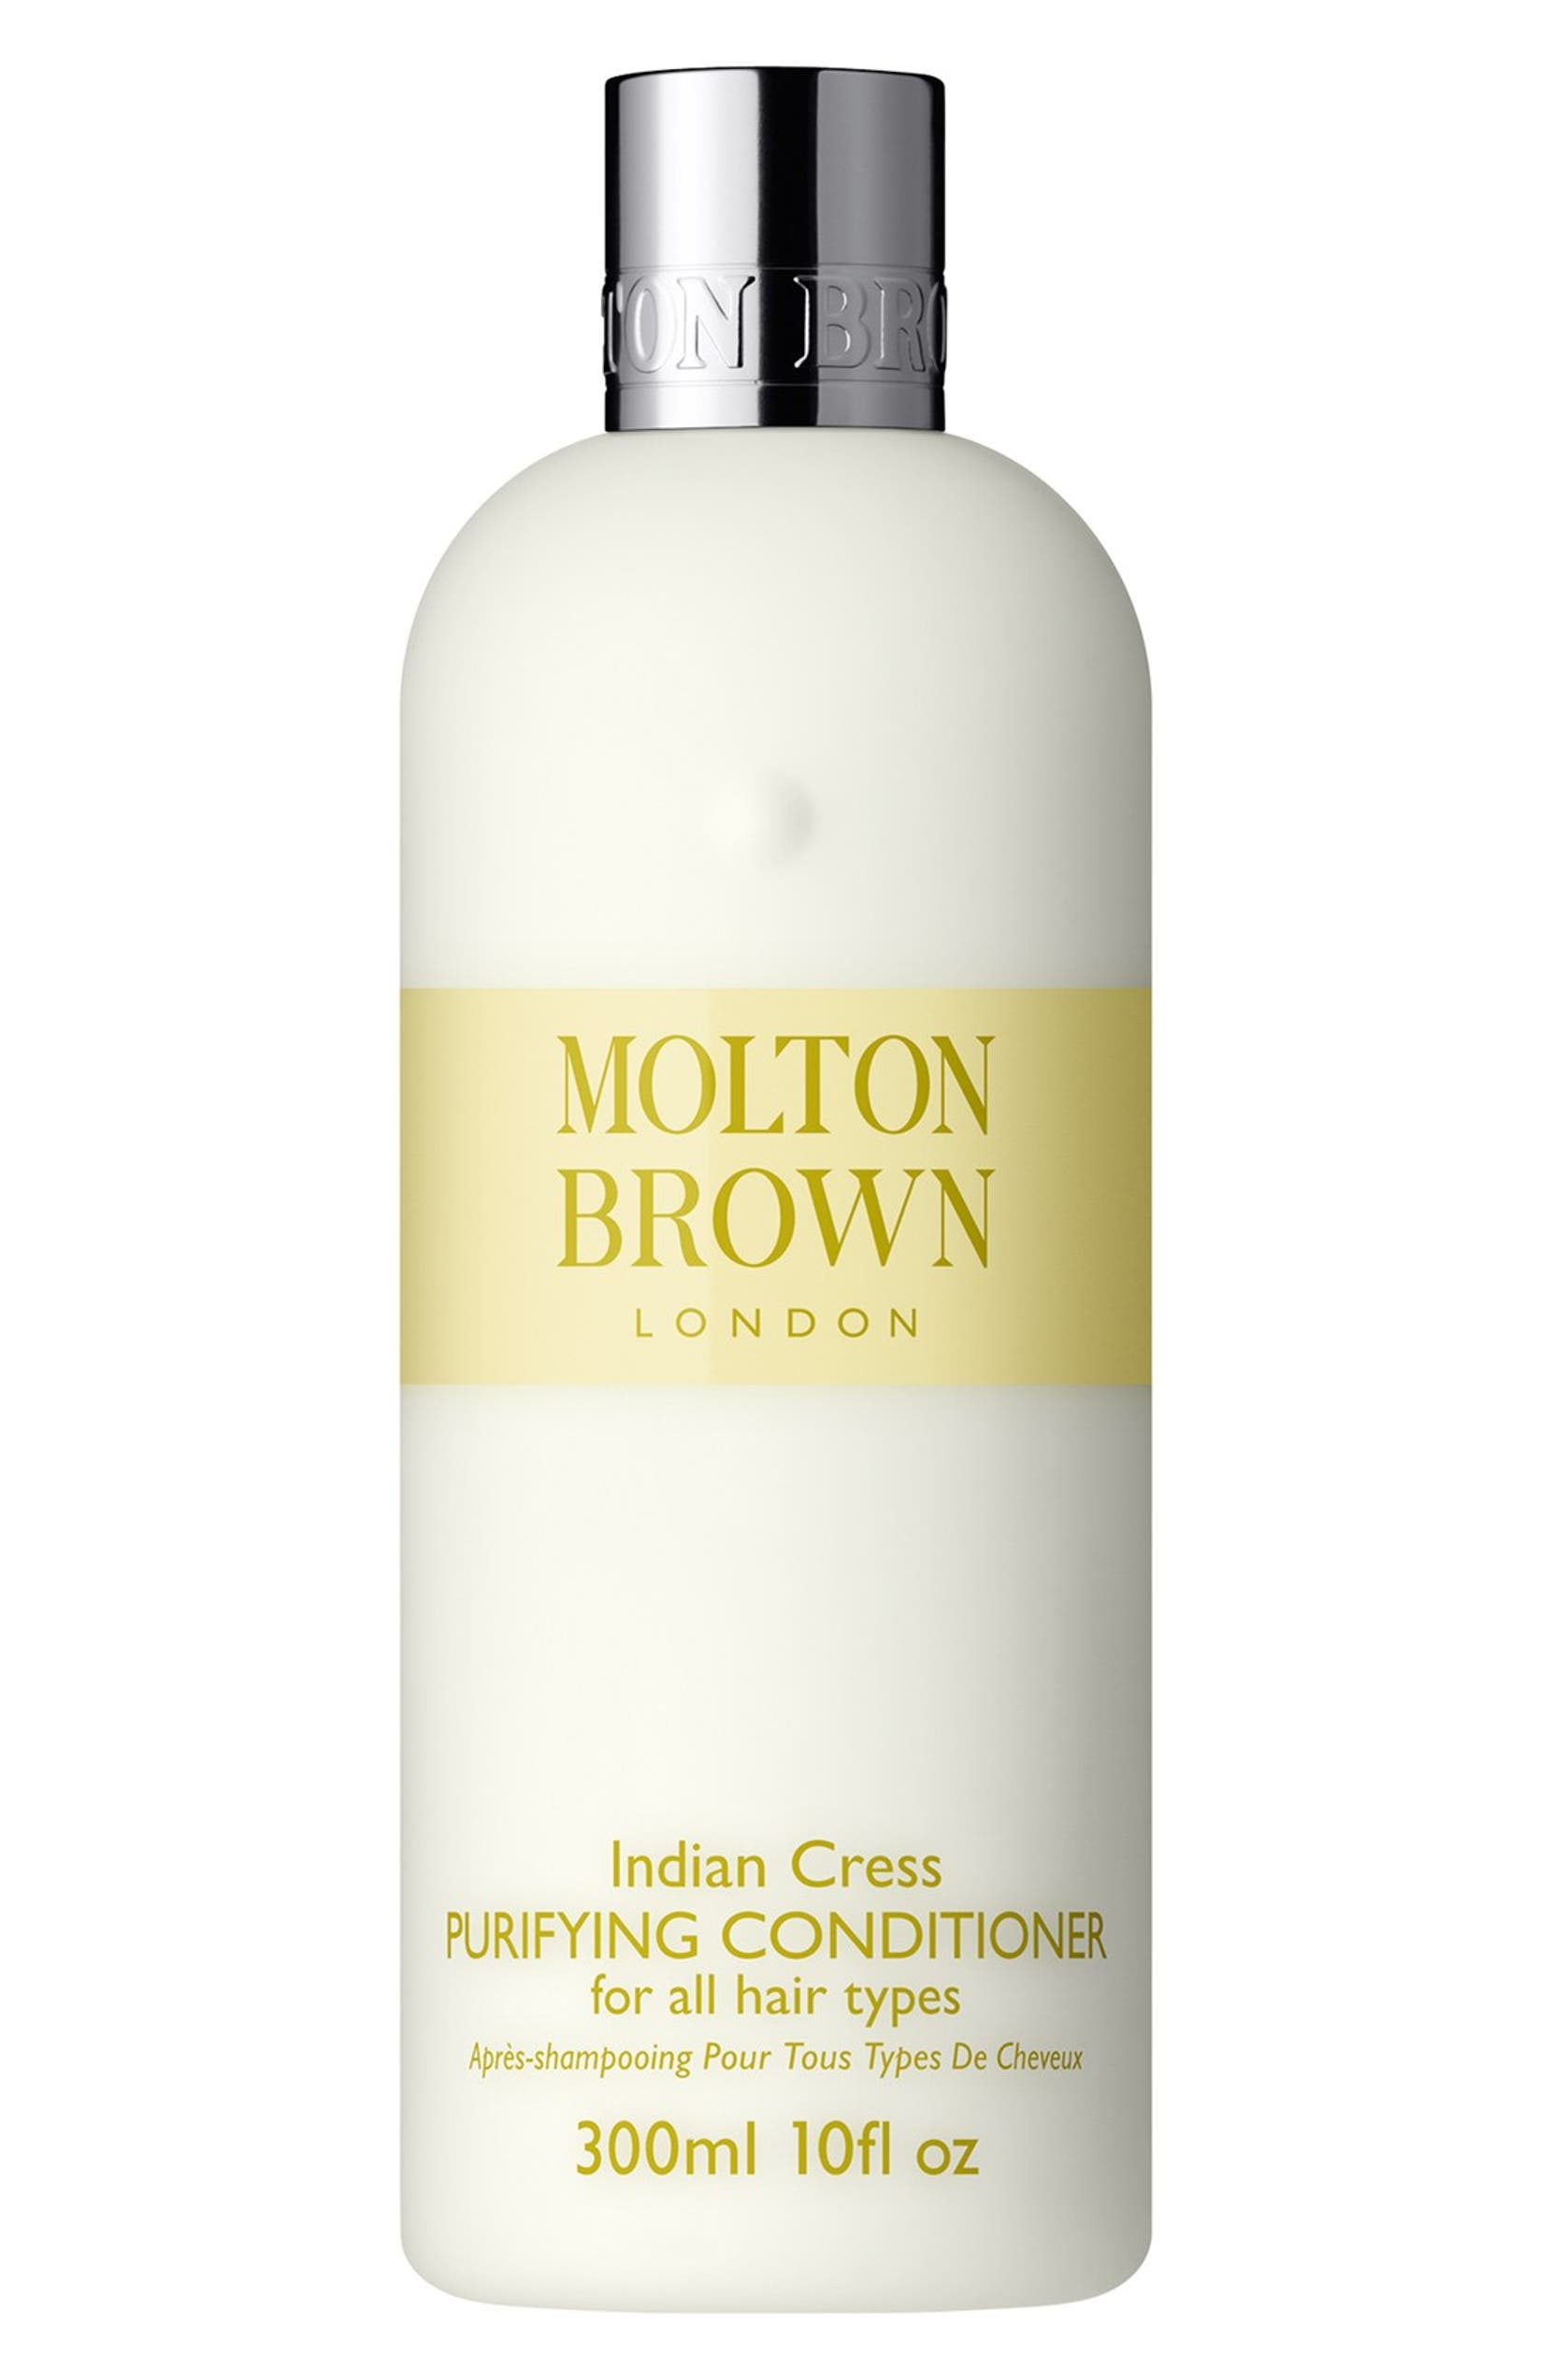 MOLTON BROWN London Indian Cress Purifying Conditioner | Nordstrom